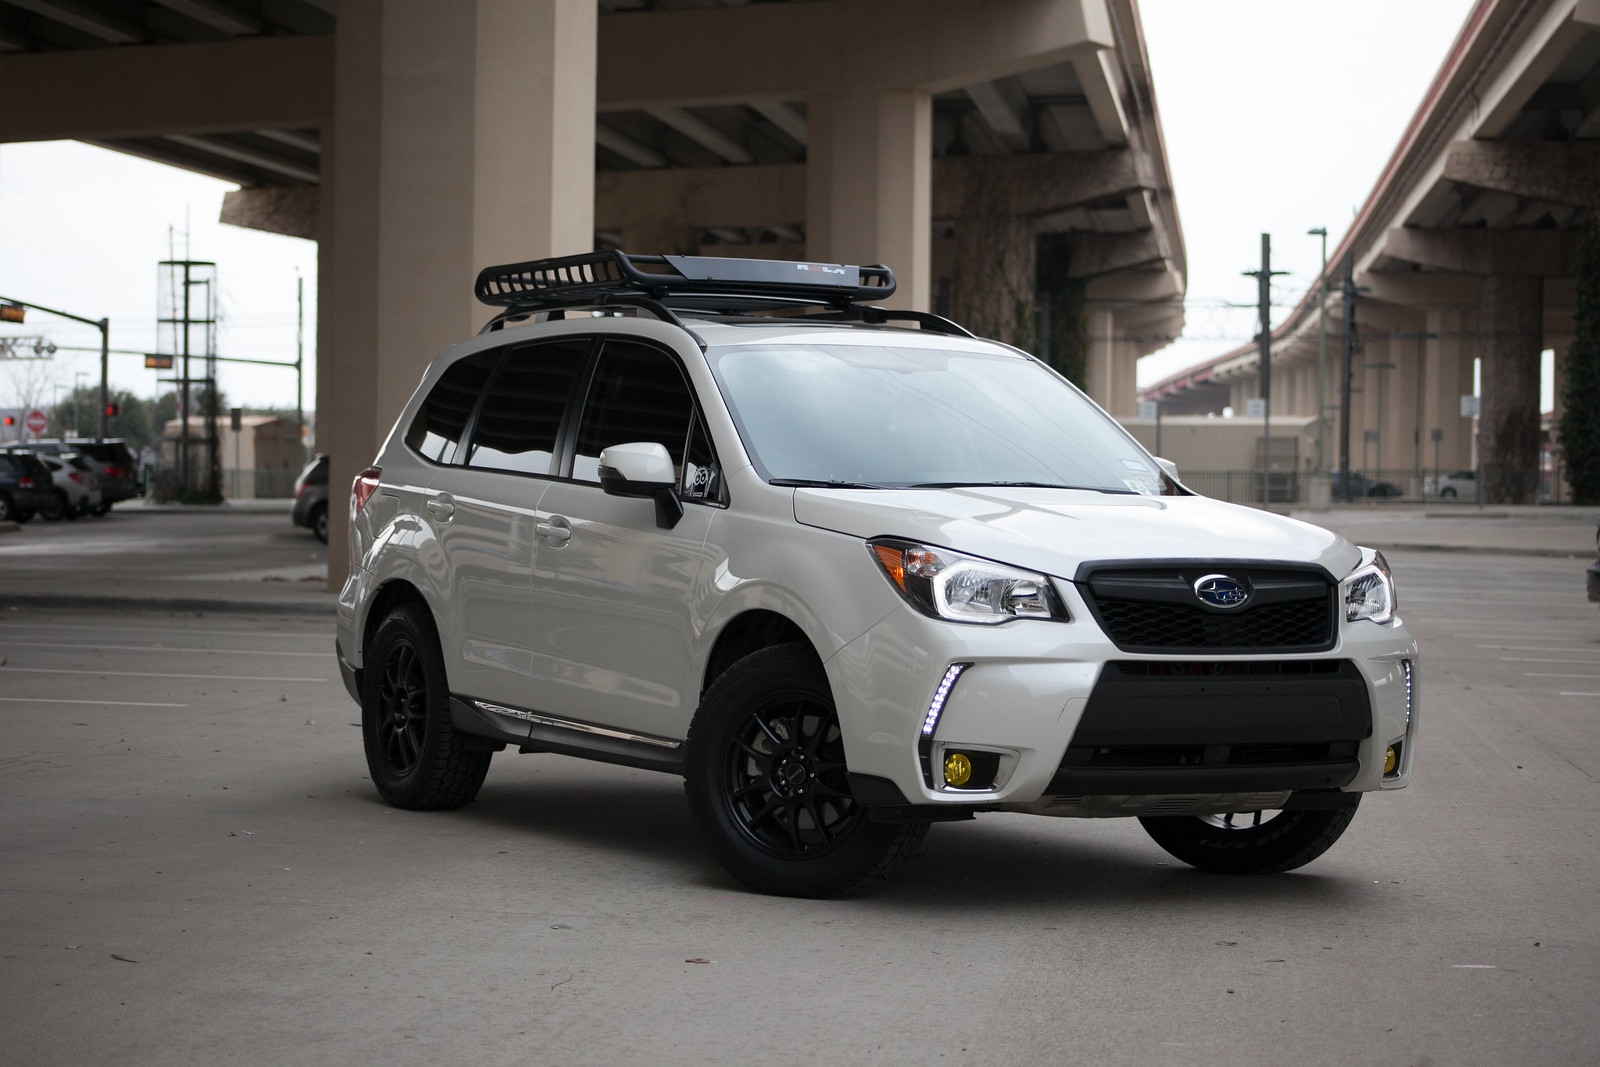 Subaru Forester Owners Forum - View Single Post - ('14-'18 ...